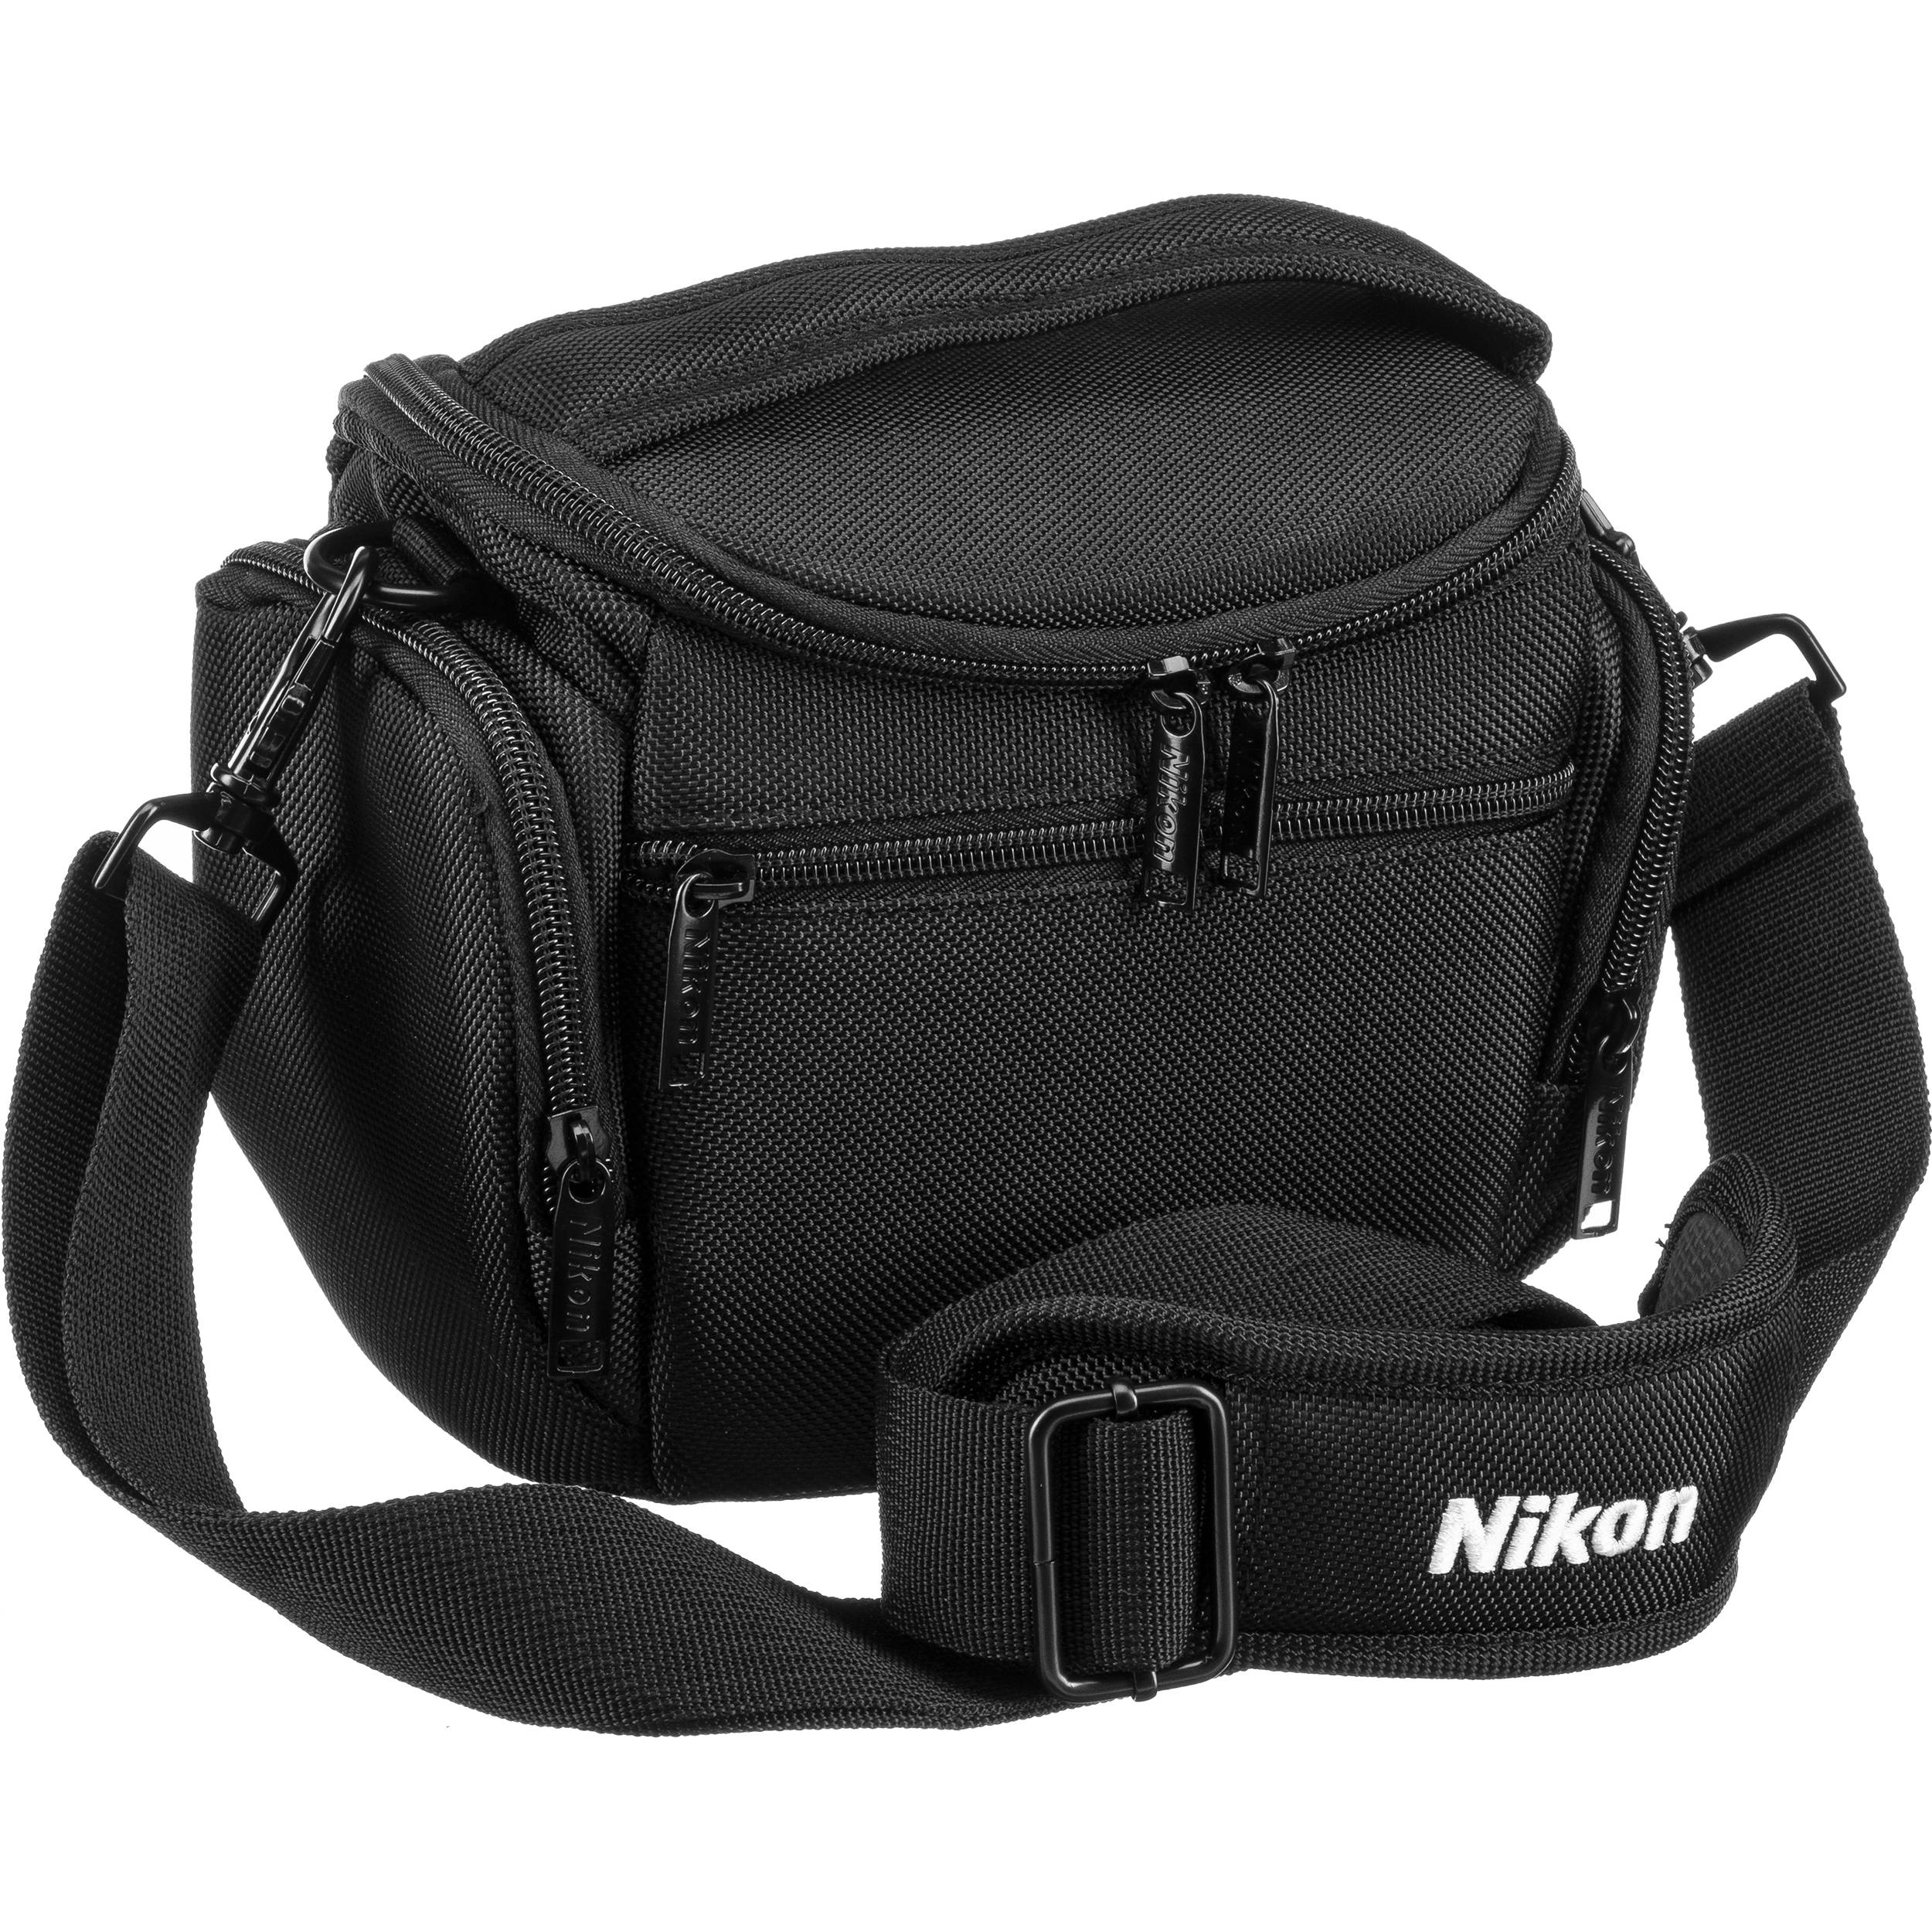 Nikon Compact Camera Bag For Coolpix Or 1 Black